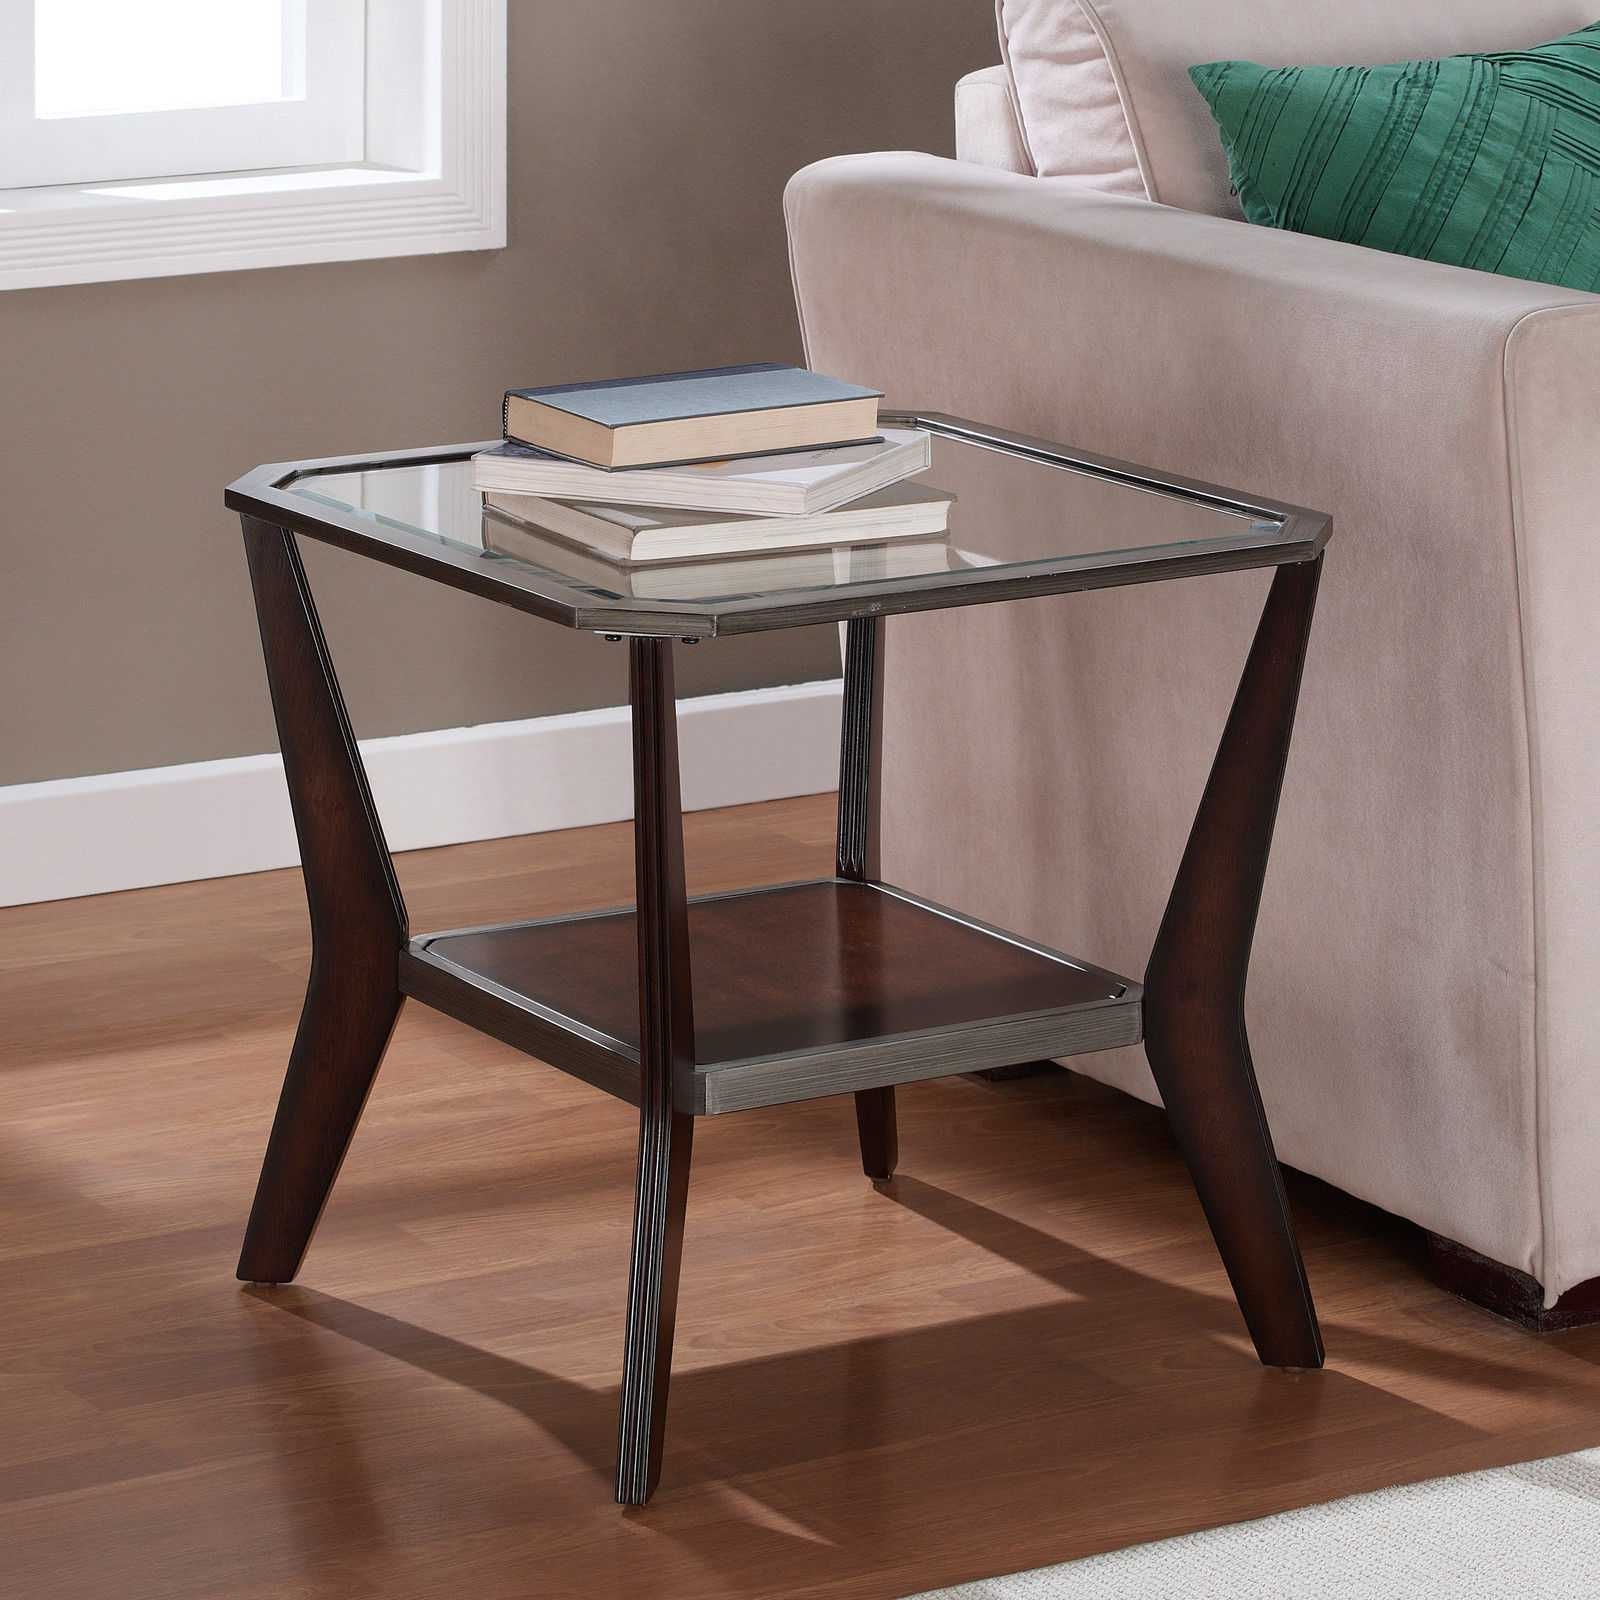 furniture living room end tables simple and beautiful hungonu modern side for ese pottery barn accent table all vintage mahogany kitchenette chairs light wood nest garden parasol